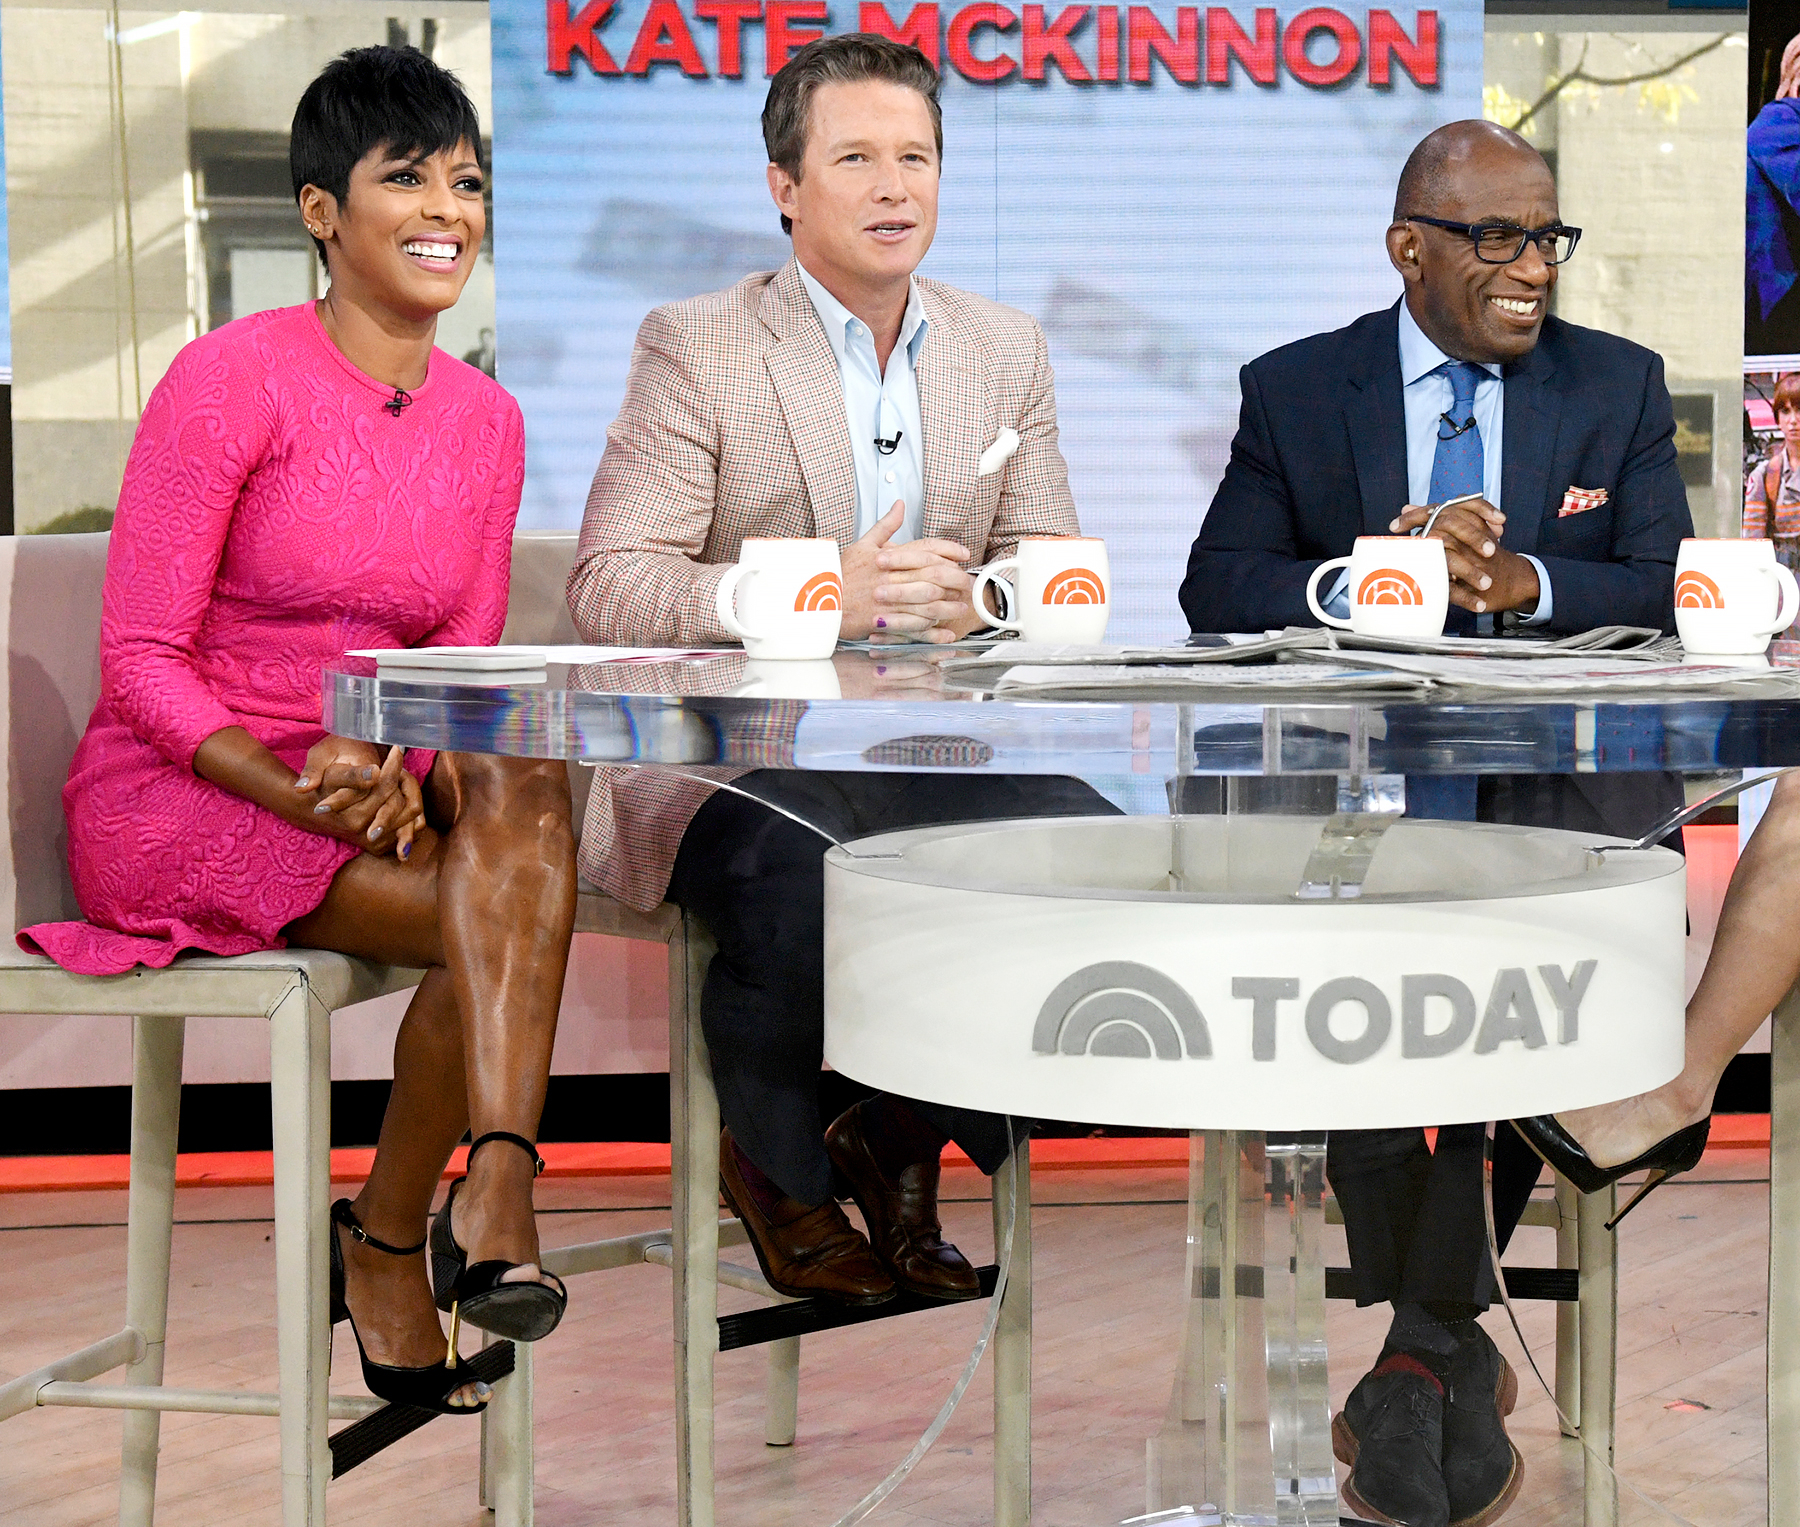 Tamron Hall, Billy Bush and Al Roker on Today, September 26, 2016.